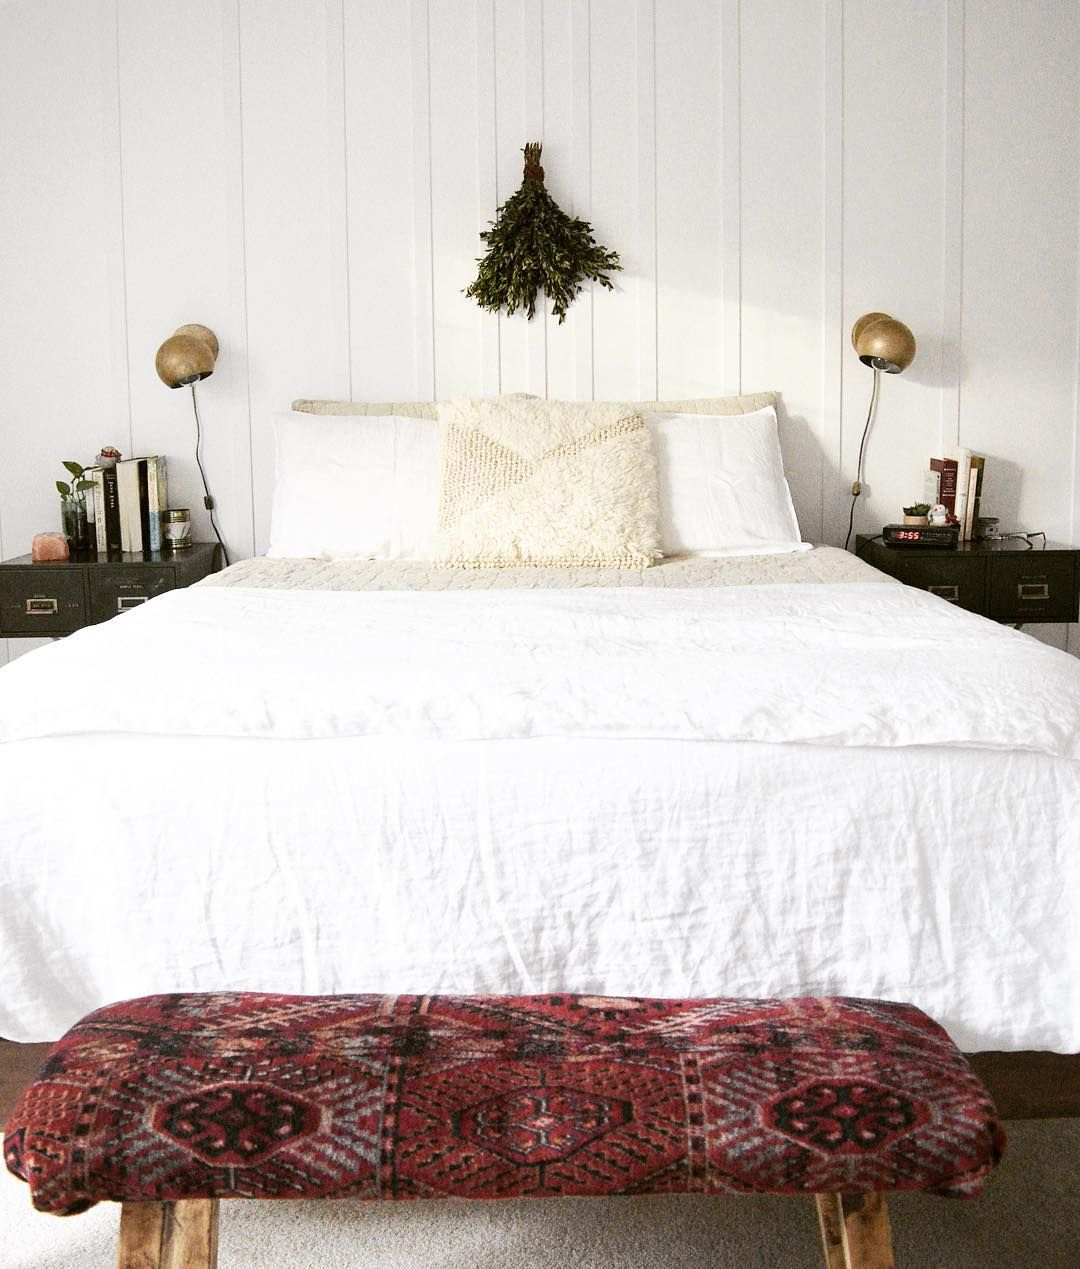 21 Cosy Winter Bedroom Ideas: A Cozy Bedroom Adorned With The Softest Touches Of Winter